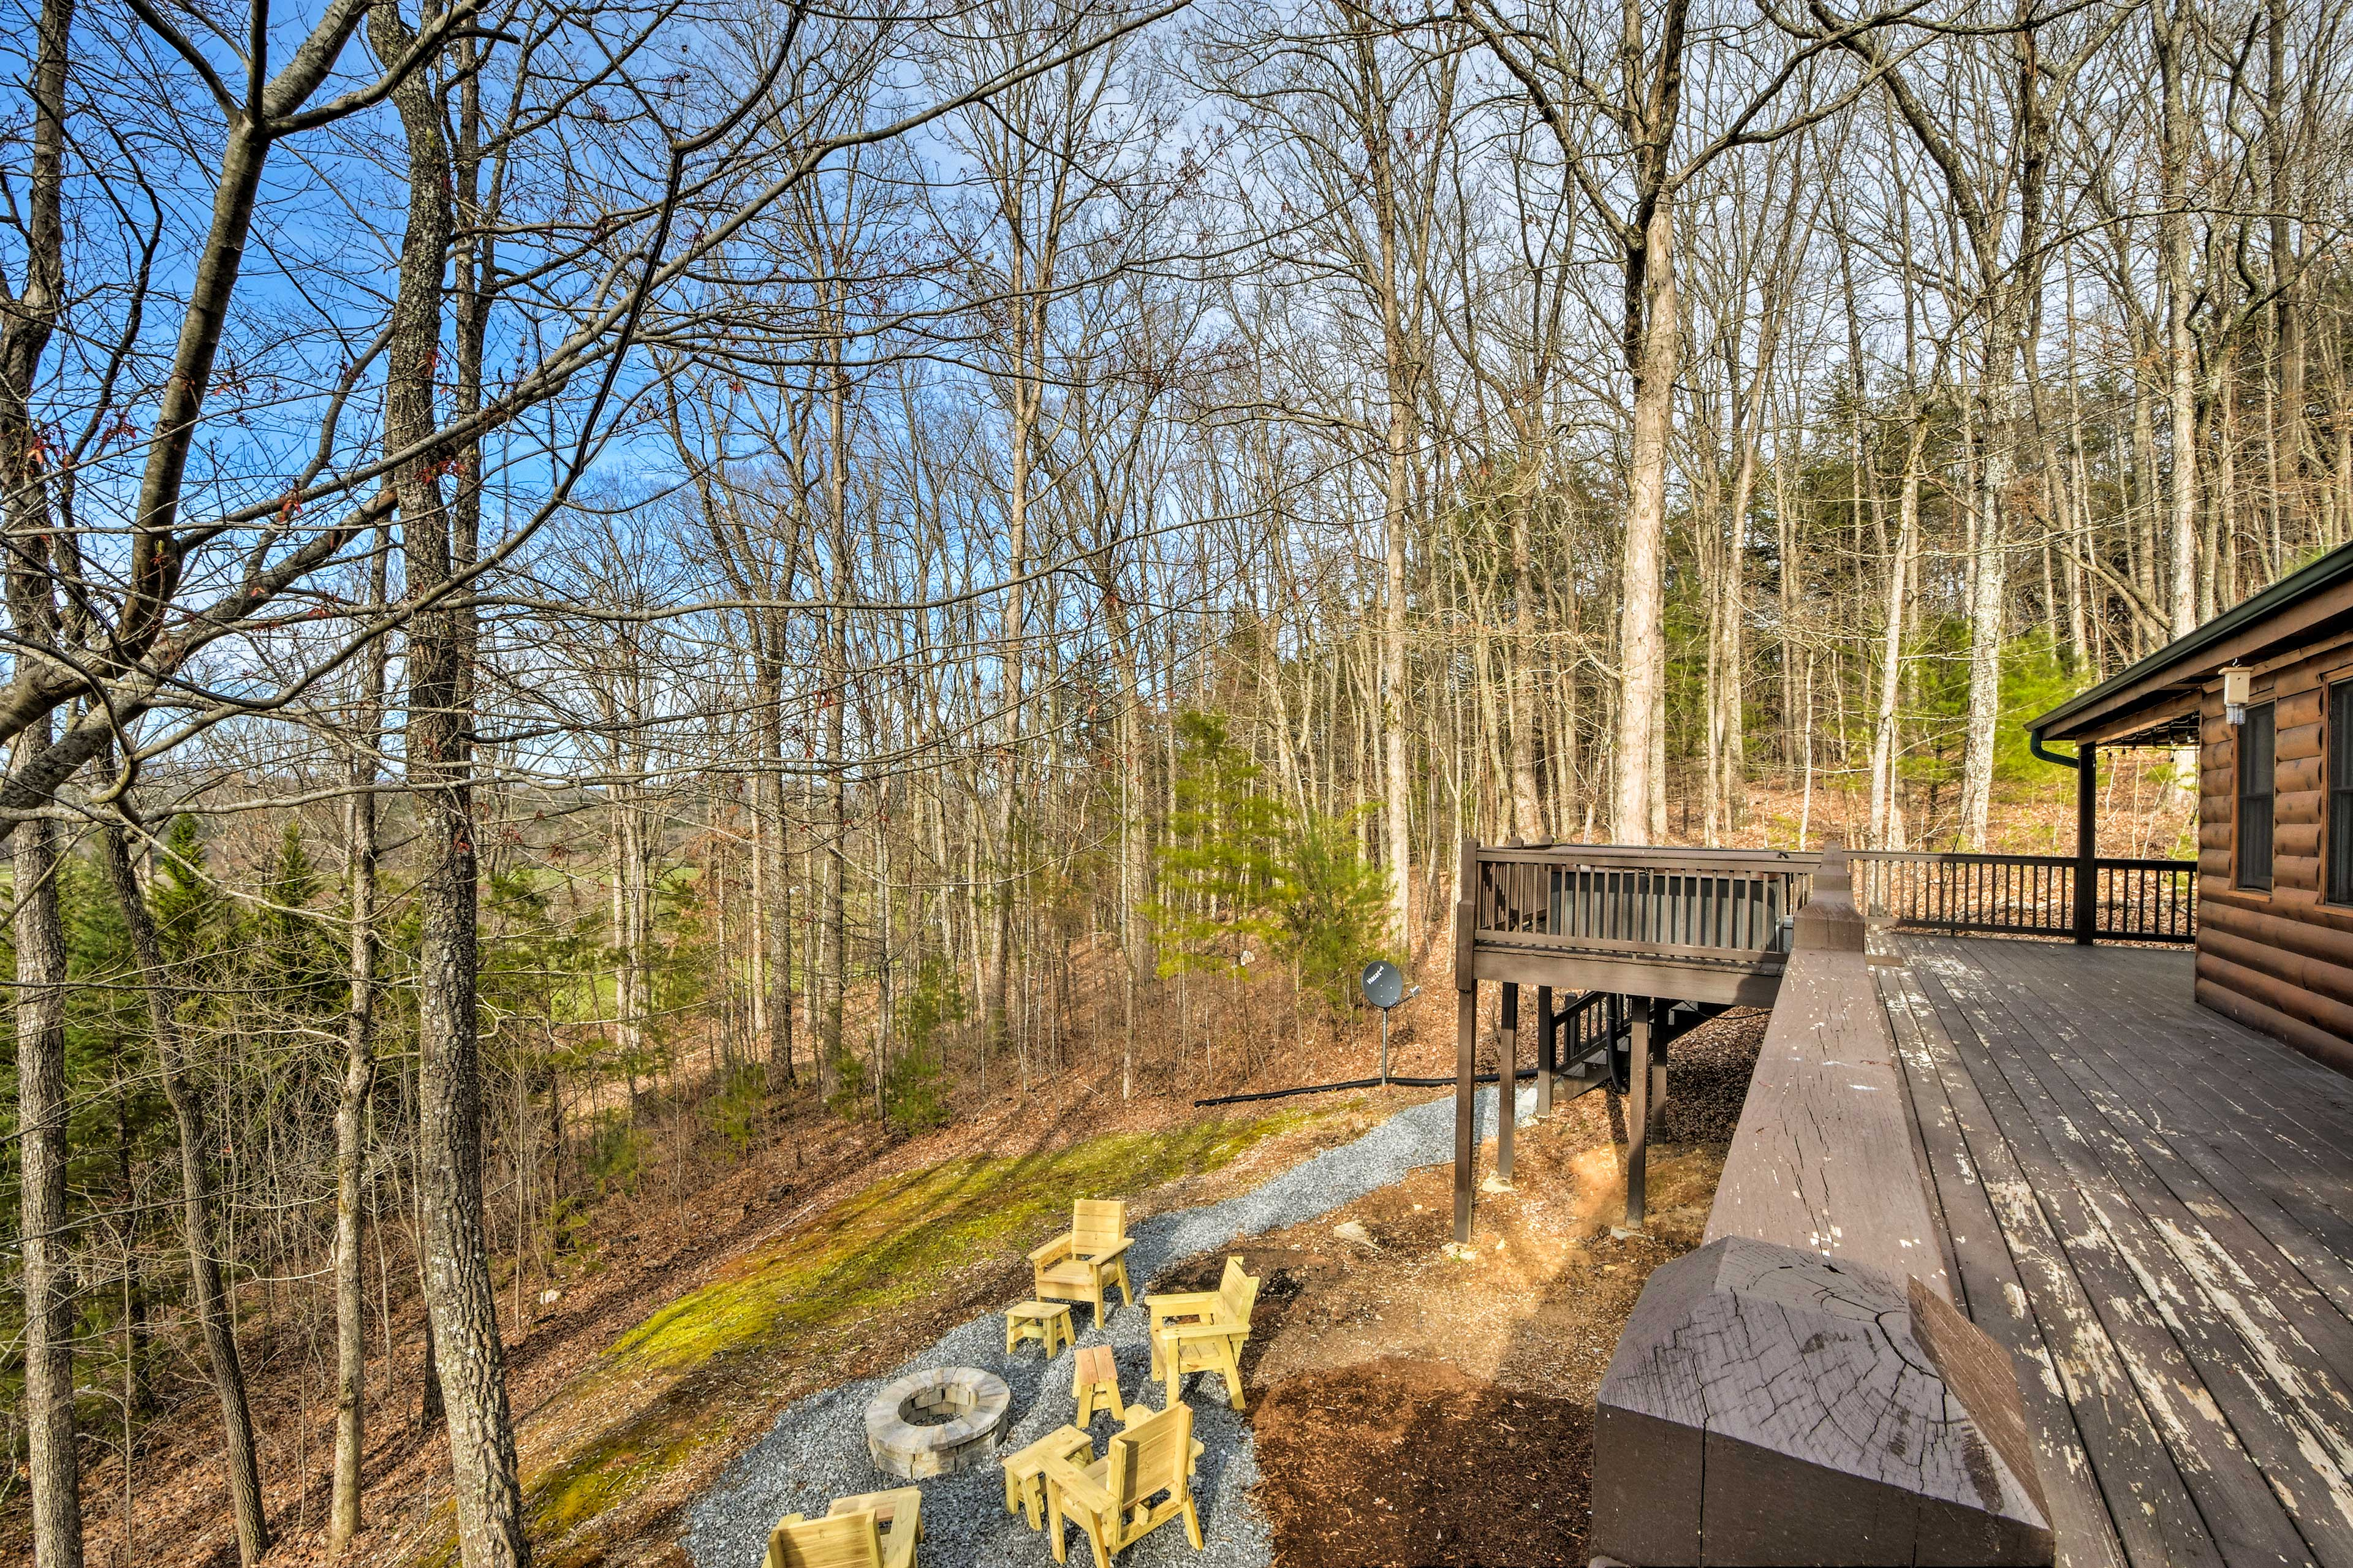 The forested property provides peace and privacy.